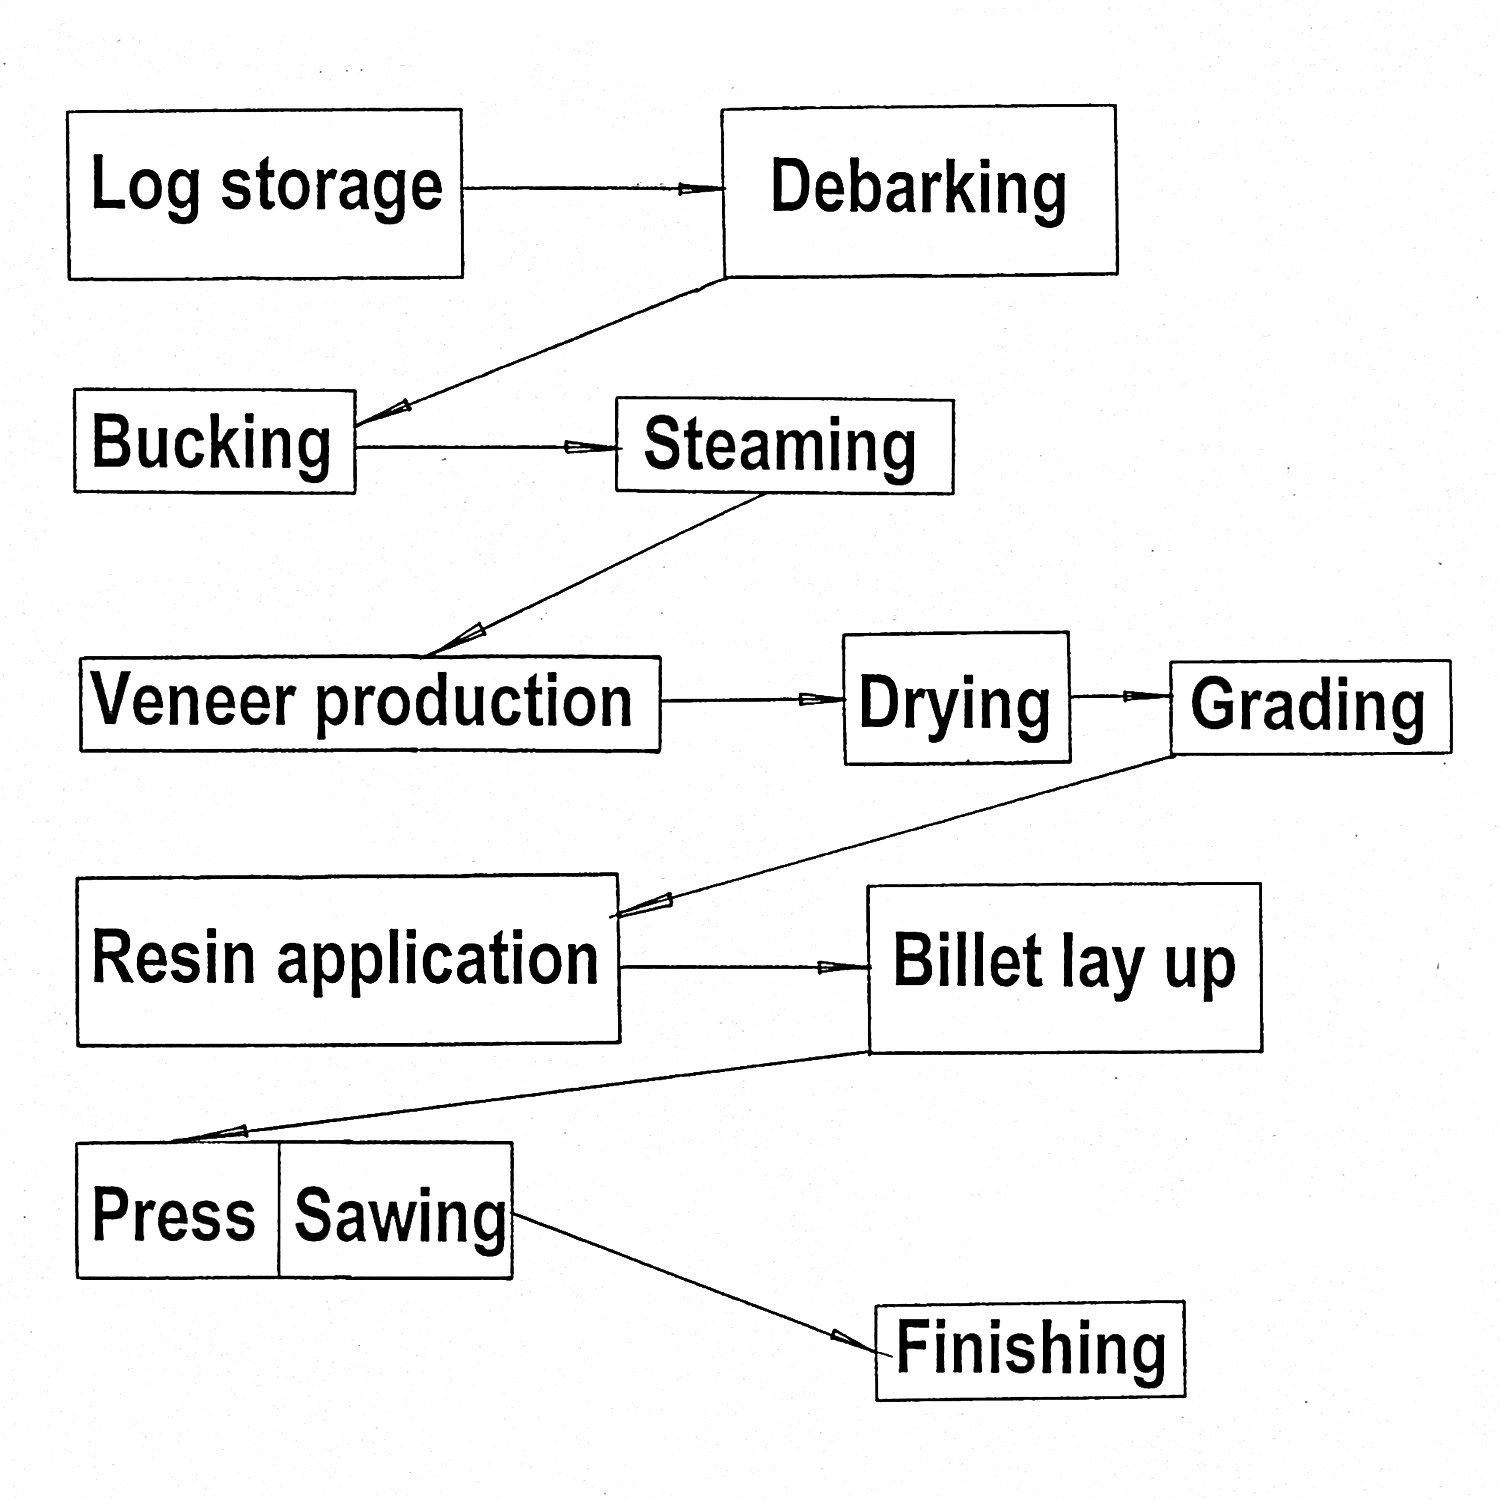 Process diagram of LVL.